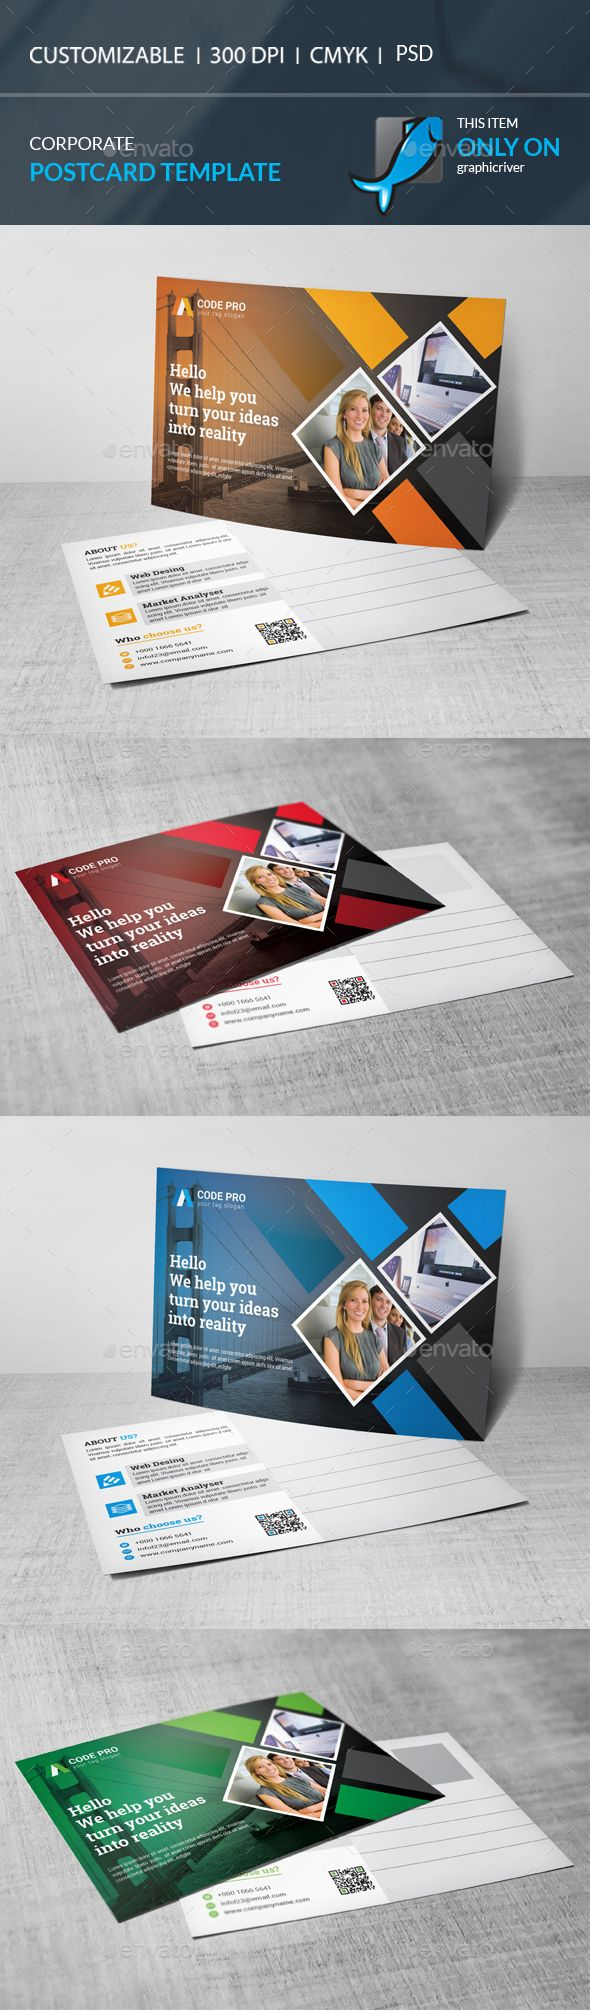 Postcard Template PSD